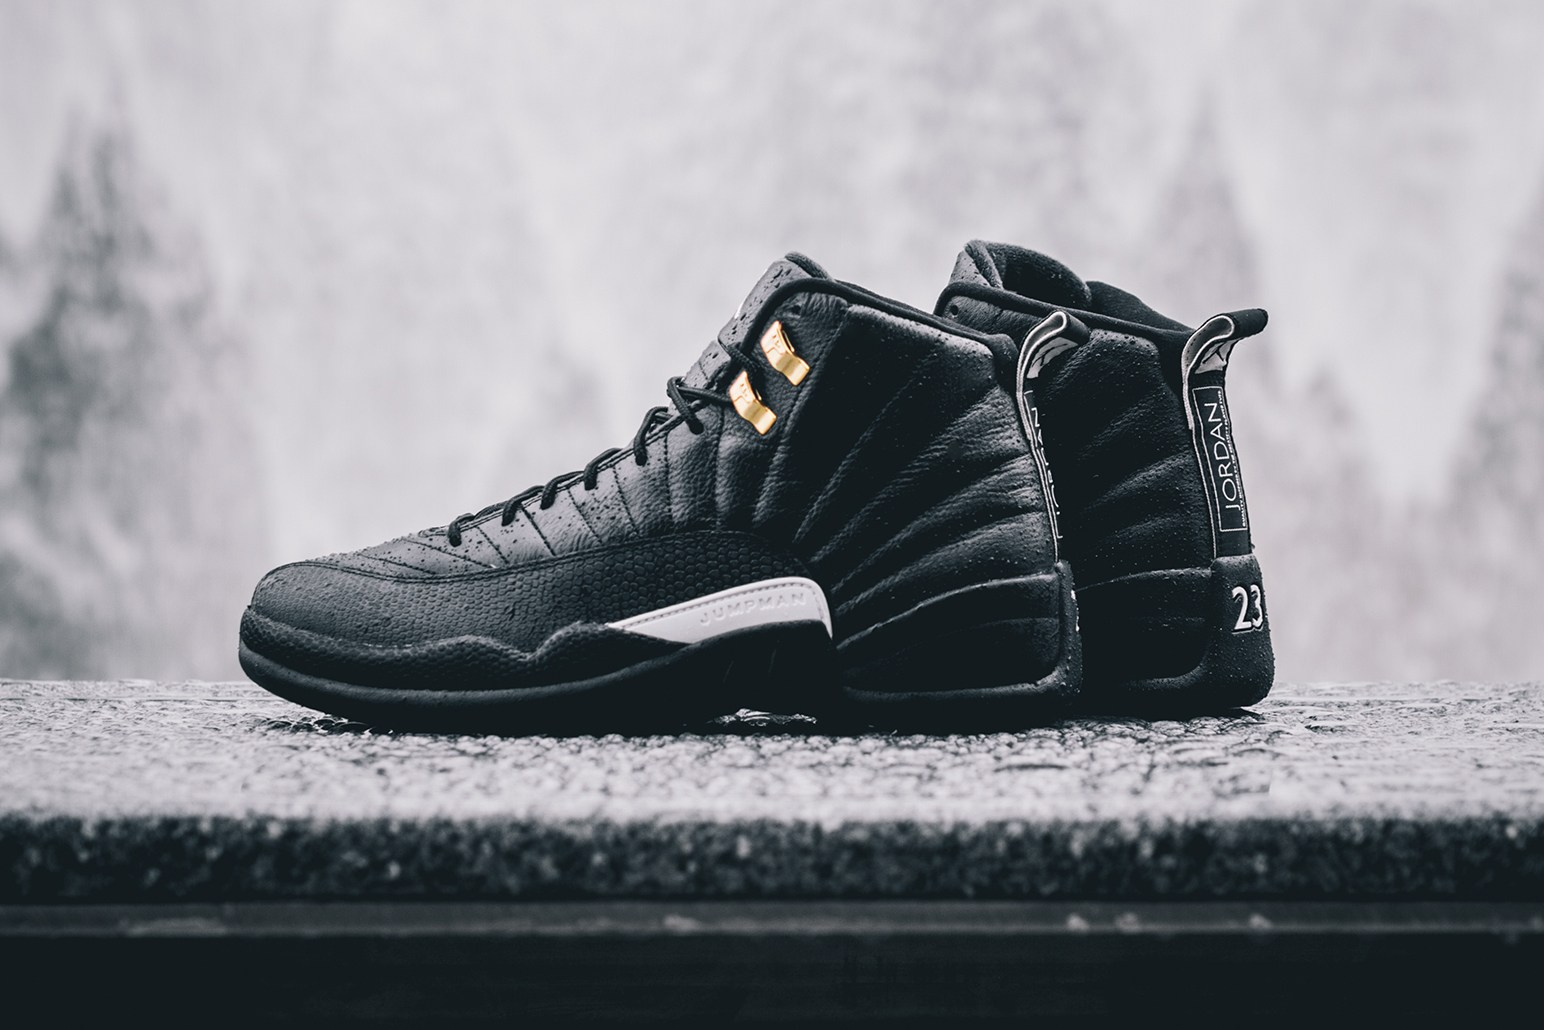 a-closer-look-at-the-air-jordan-12-retro-the-master-1